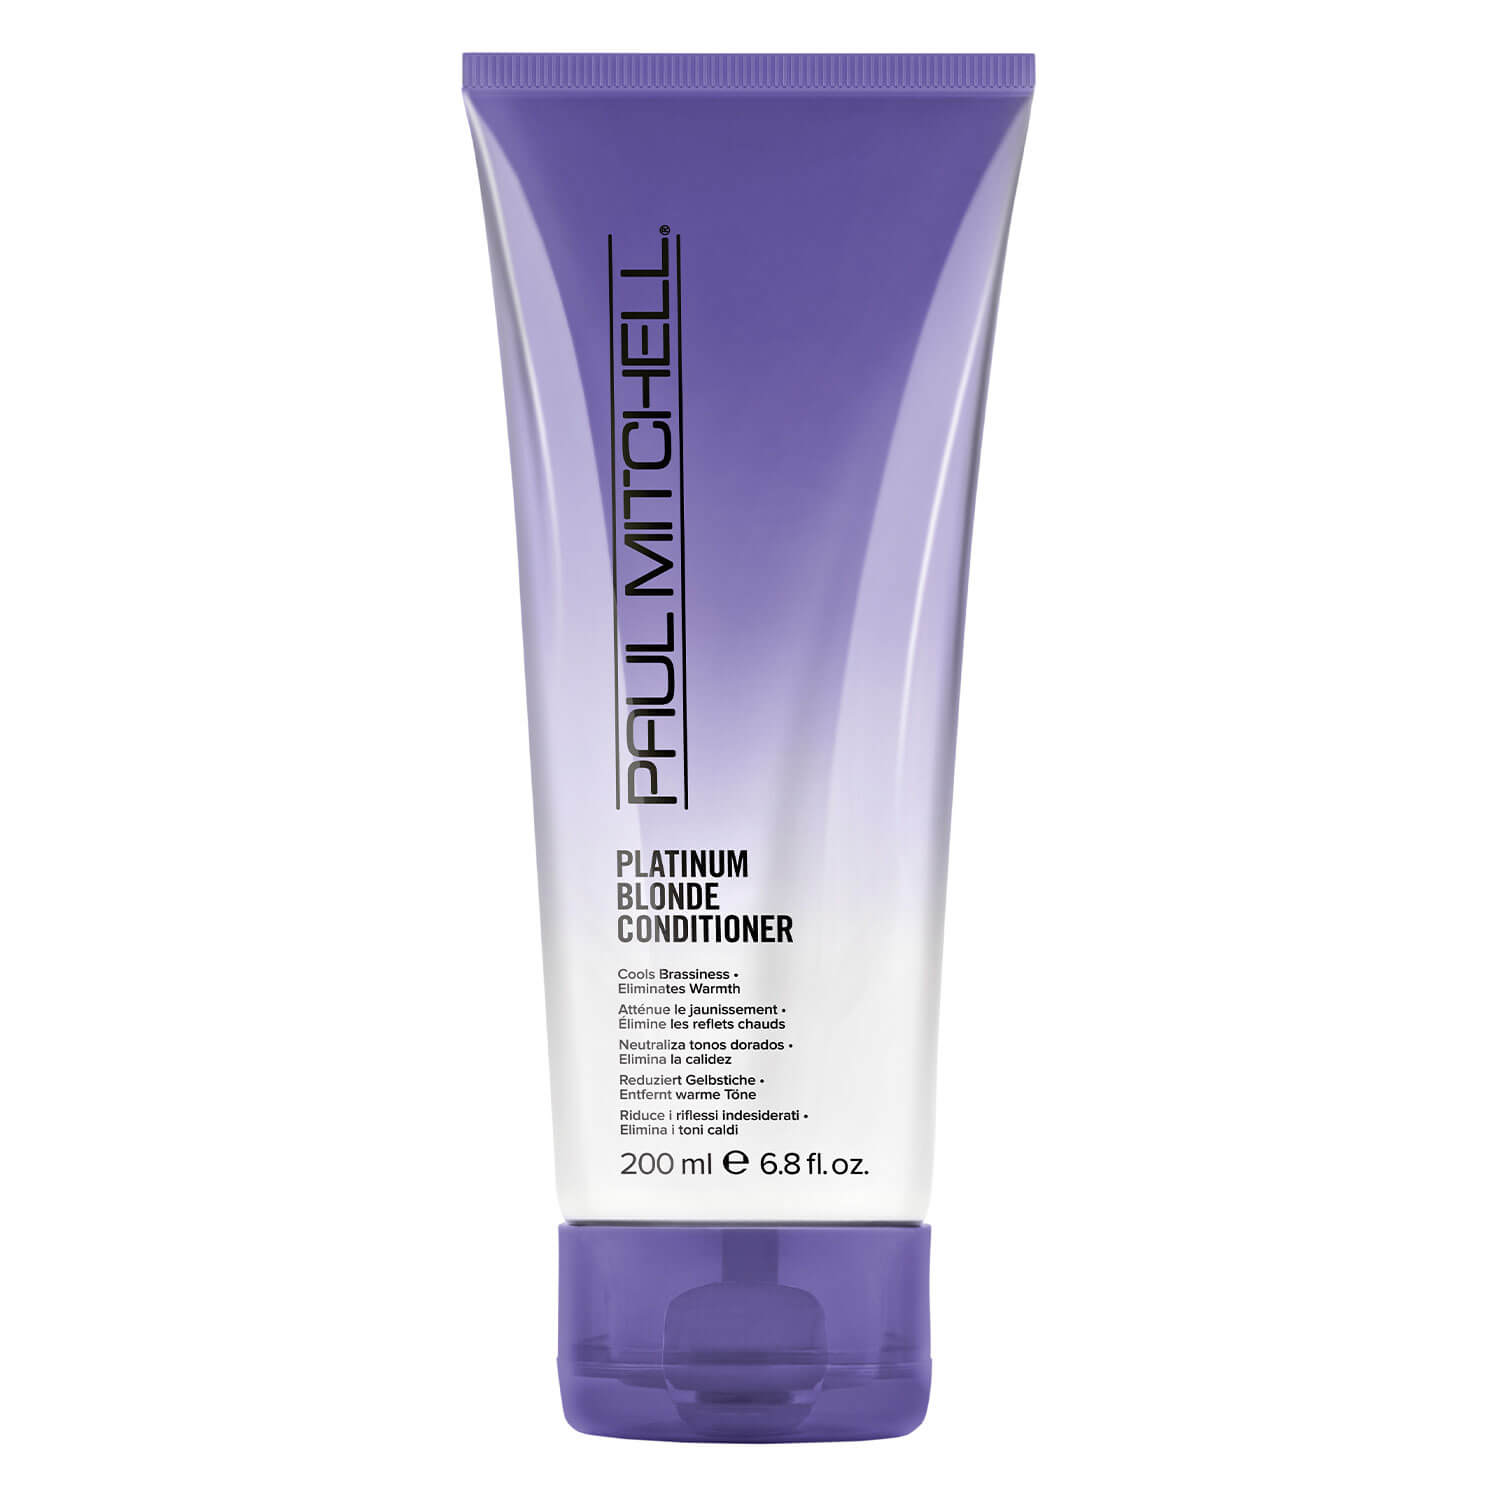 Blonde - Platinum Blonde Conditioner